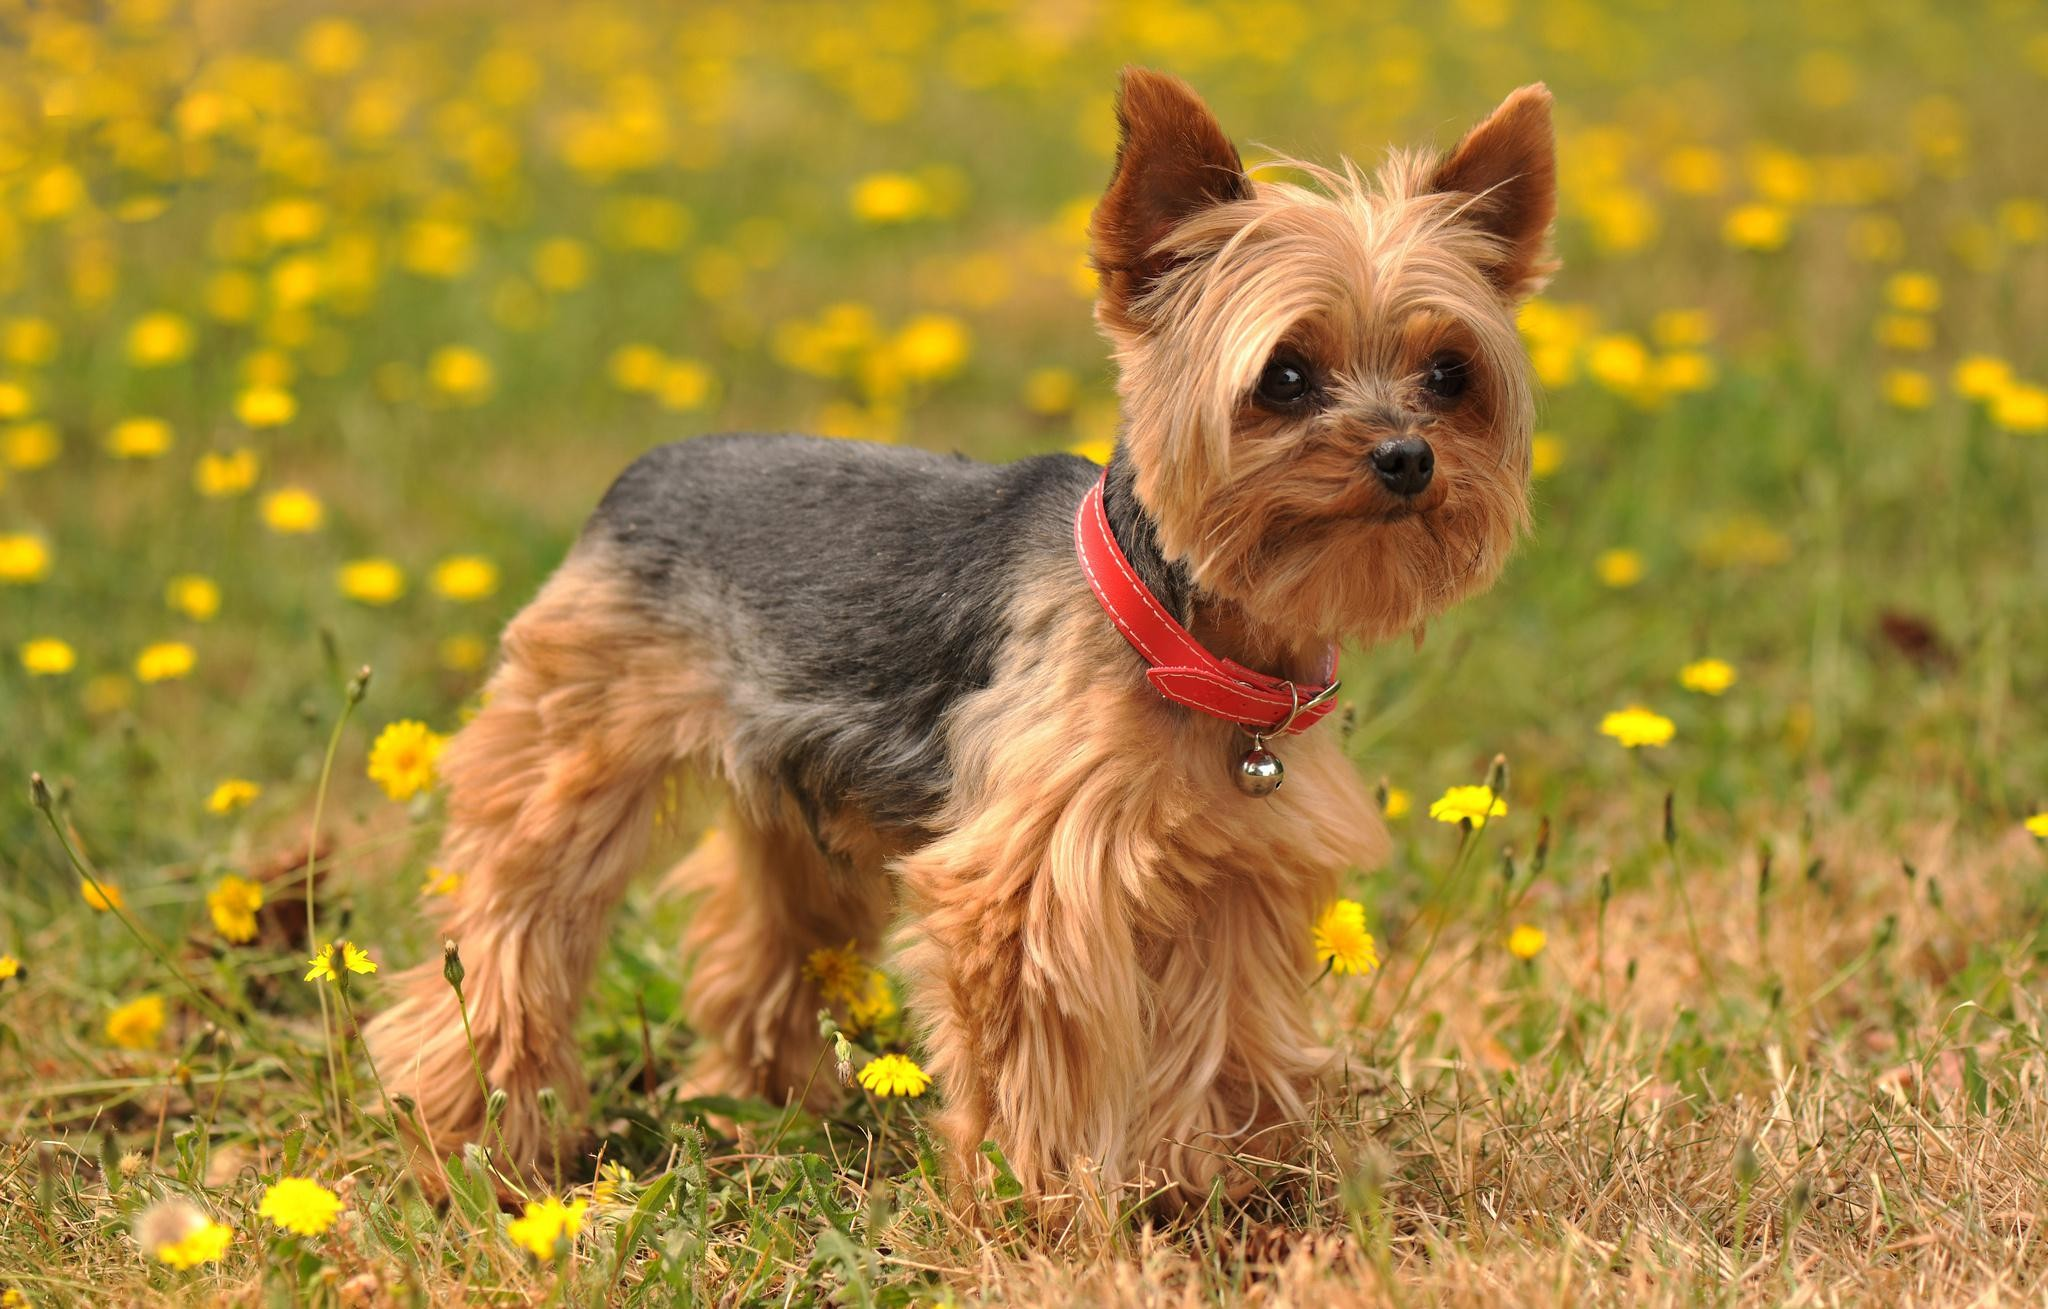 2048x1309 Animals Yorkshire Terrier Dog Images.Very Beautiful Yorkshire Terrier Dog  Photos.Yorkshire Terrier Dog Pics Background Wallpapers Download.